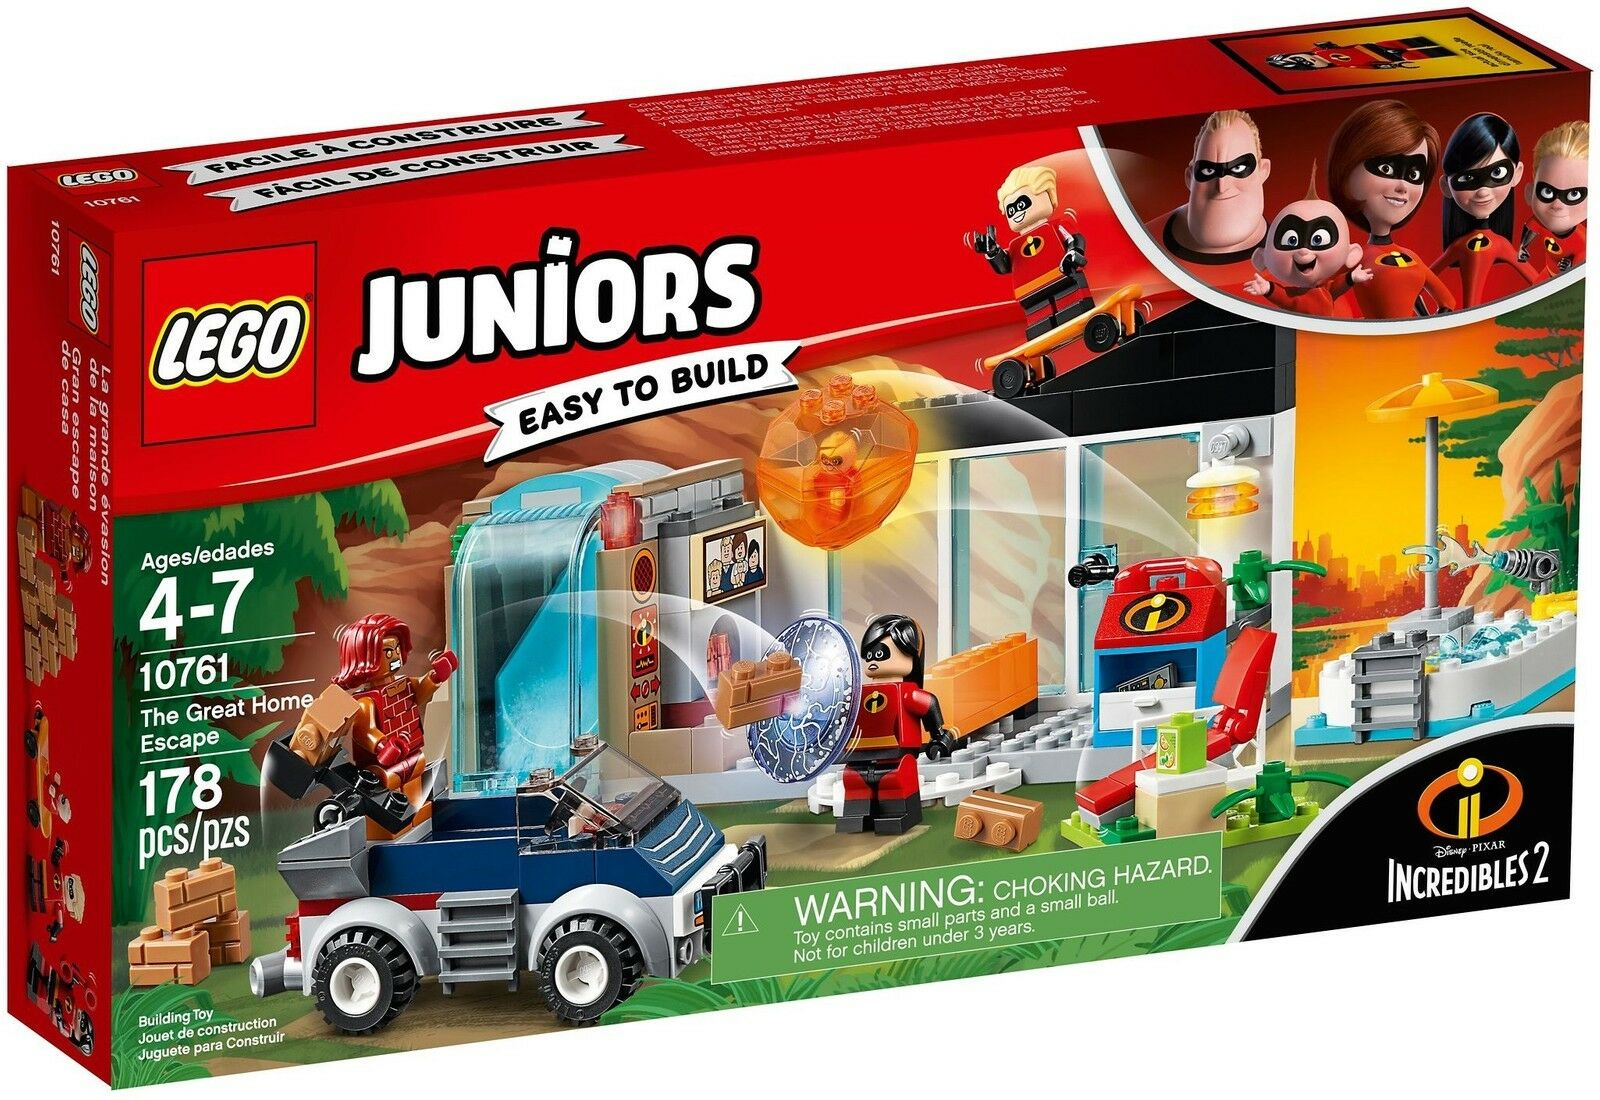 LEGO® Juniors 10761 Die große Flucht NEU OVP_The Great Home Escape NEW MISB NRFB